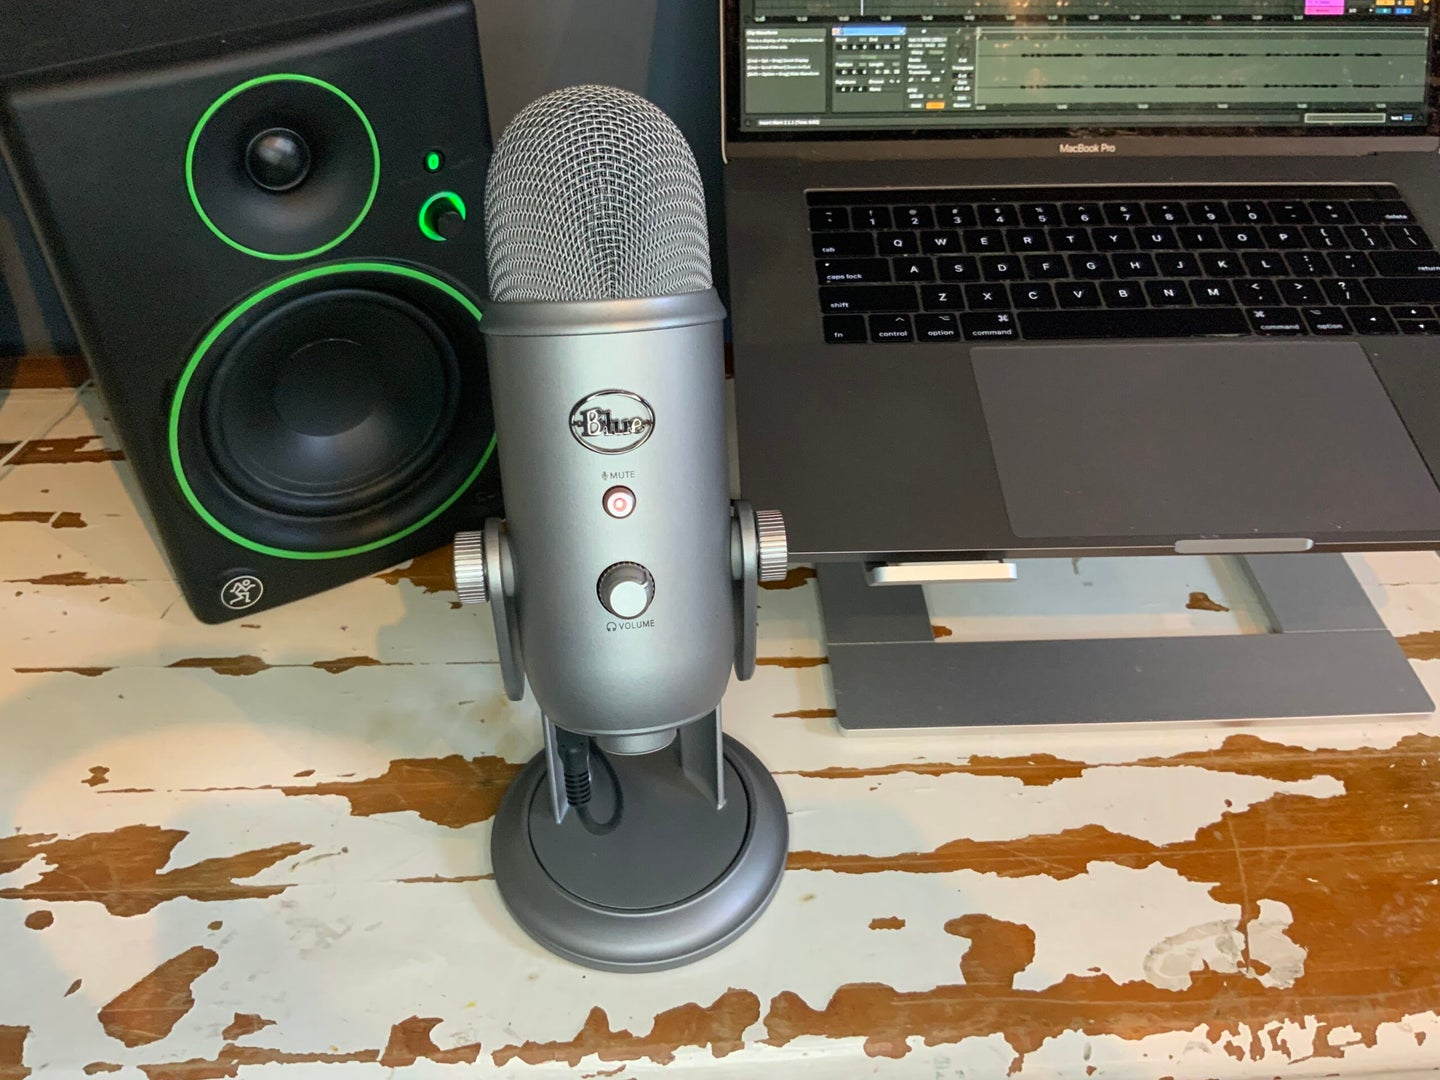 Blue Yeti USB microphone with a MacBook Pro